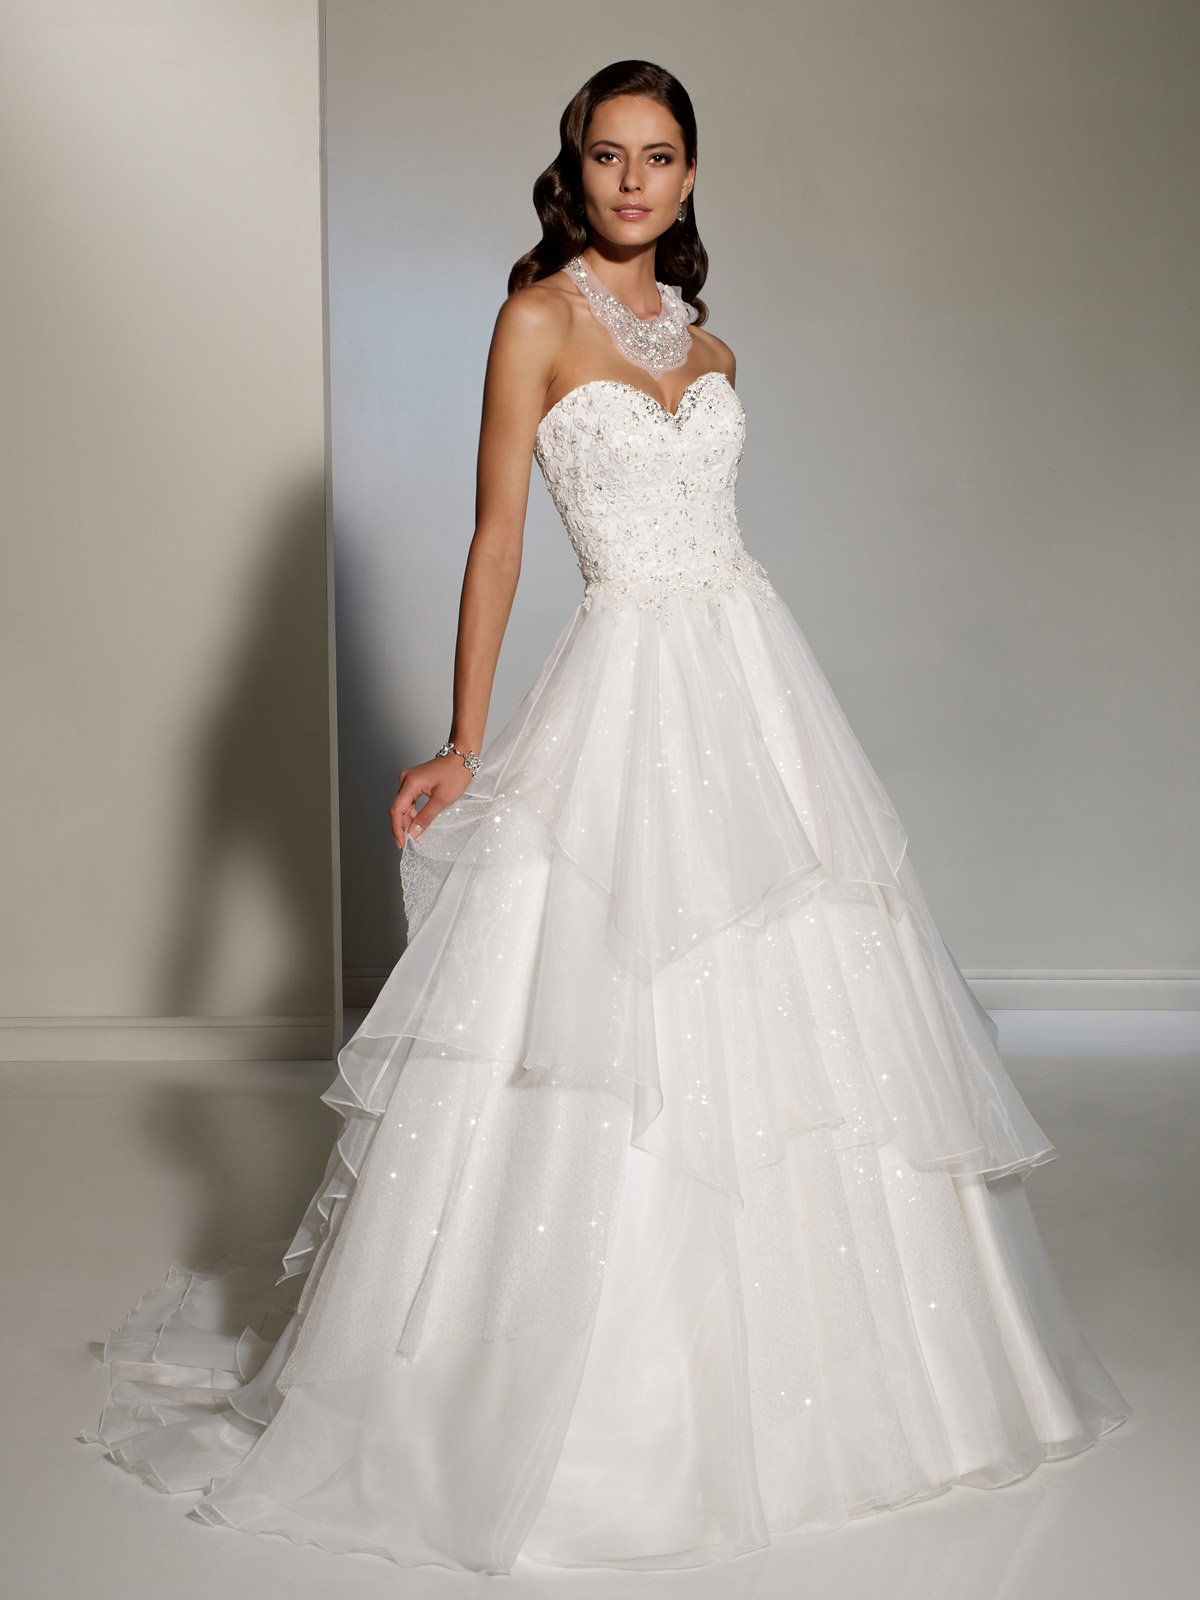 2012-wedding-dress-sophia-tolli-for-mon-cheri-bridal-gowns-y11205.original